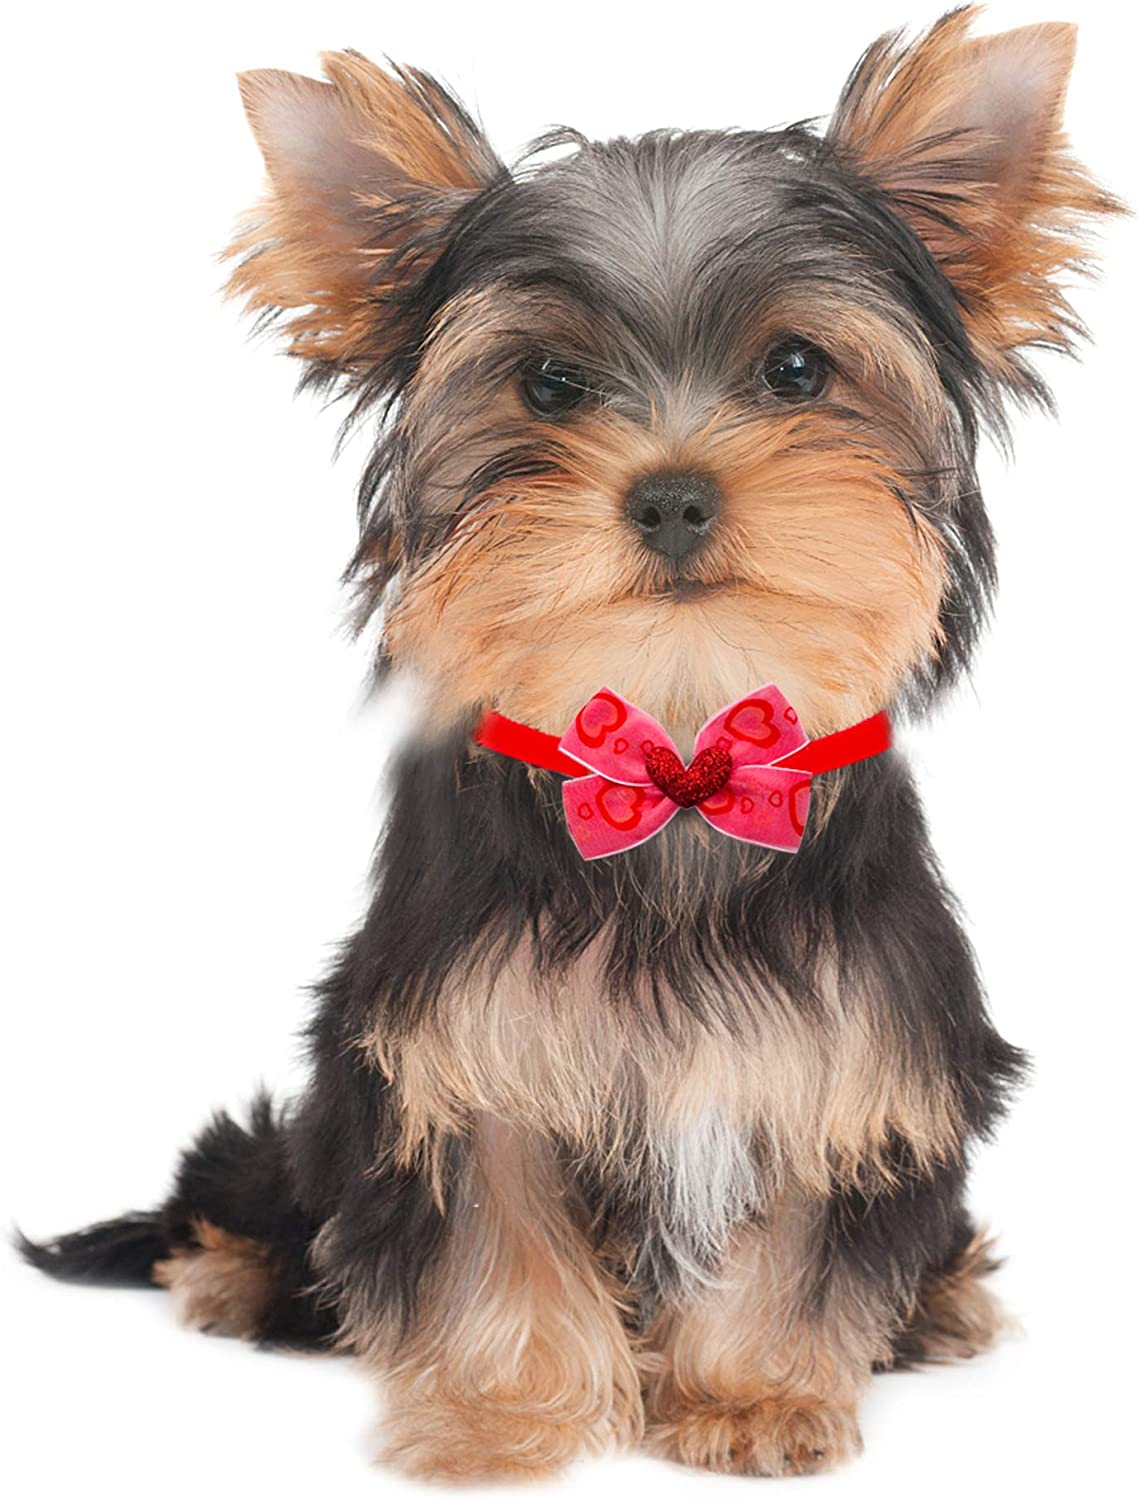 JpGdn 20pcs//10pairs Valentines Day Small Dogs Bowties Puppy Neckties with Beads Bow Ties for Puppy Doggy Cat Rabbit Medium Pet Adjustable Neckties Bowtie Collar Grooming Accessories Costume